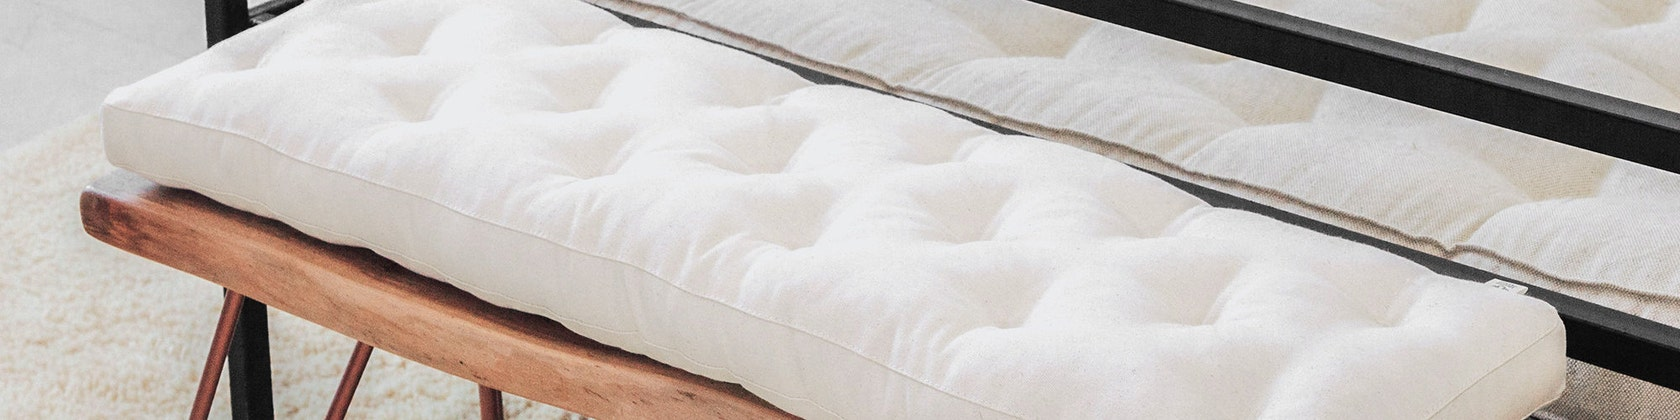 Home of Wool // Handmade 100/% Wool Mattress Protector // Woolen Puddle Pad // Moisture Barrier // Cover for Changing Table Order to Cradle or Bassinet Mattress // Non Crib Toxic Bedding // Natural Color // Custom Sizes /& Shapes Available // Made